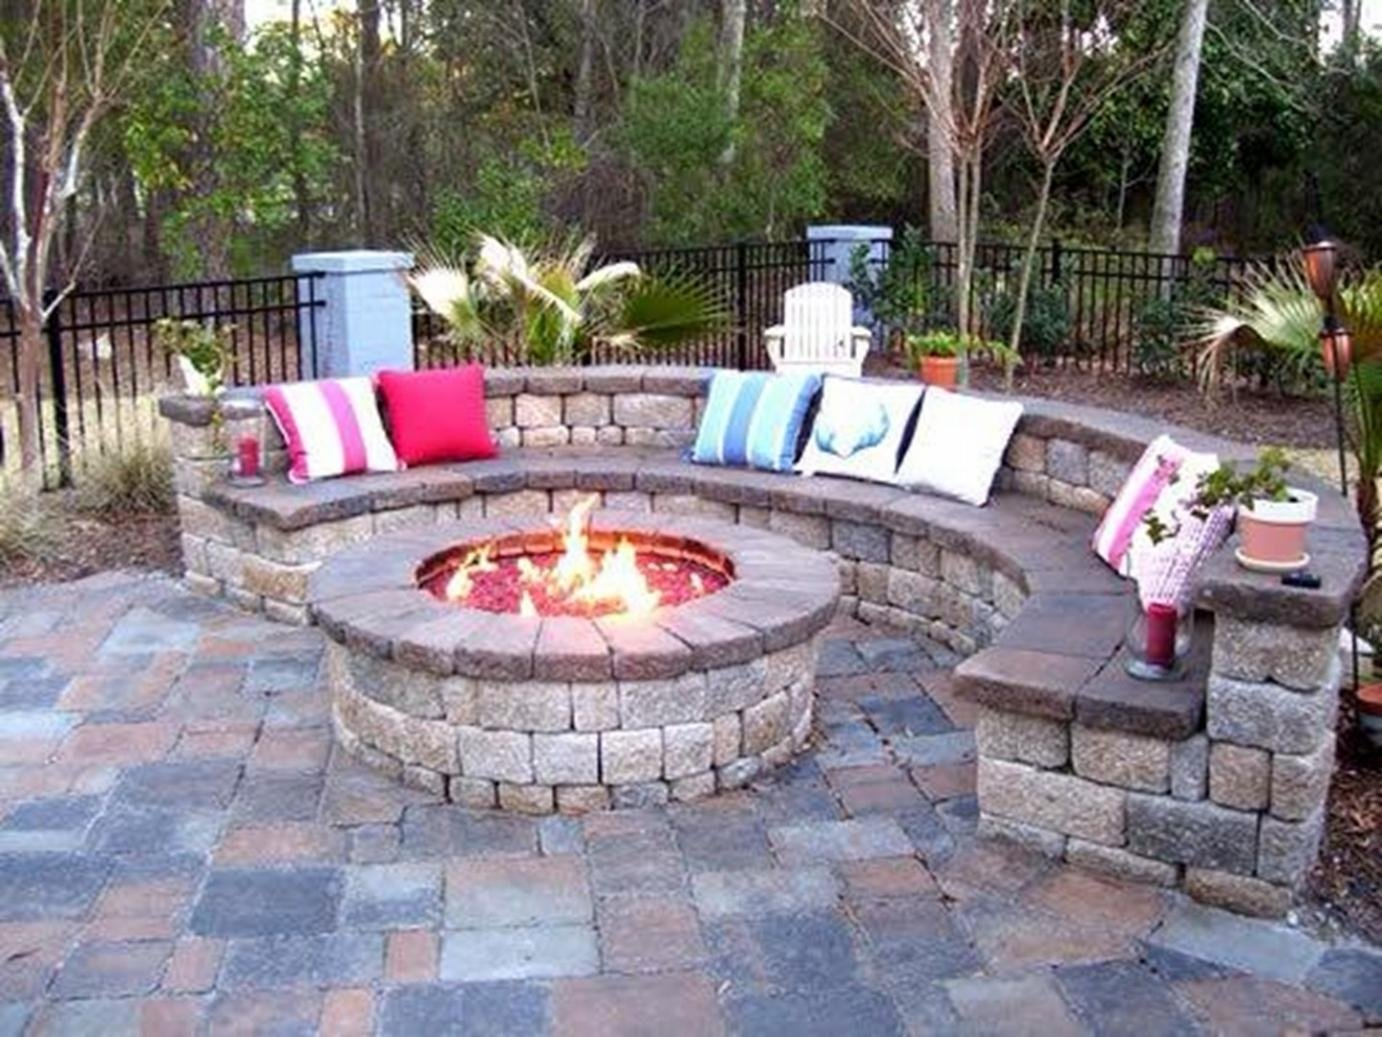 10 Perfect Patio Design Ideas With Fire Pits backyard design ideas with fire pit large and beautiful photos 2021